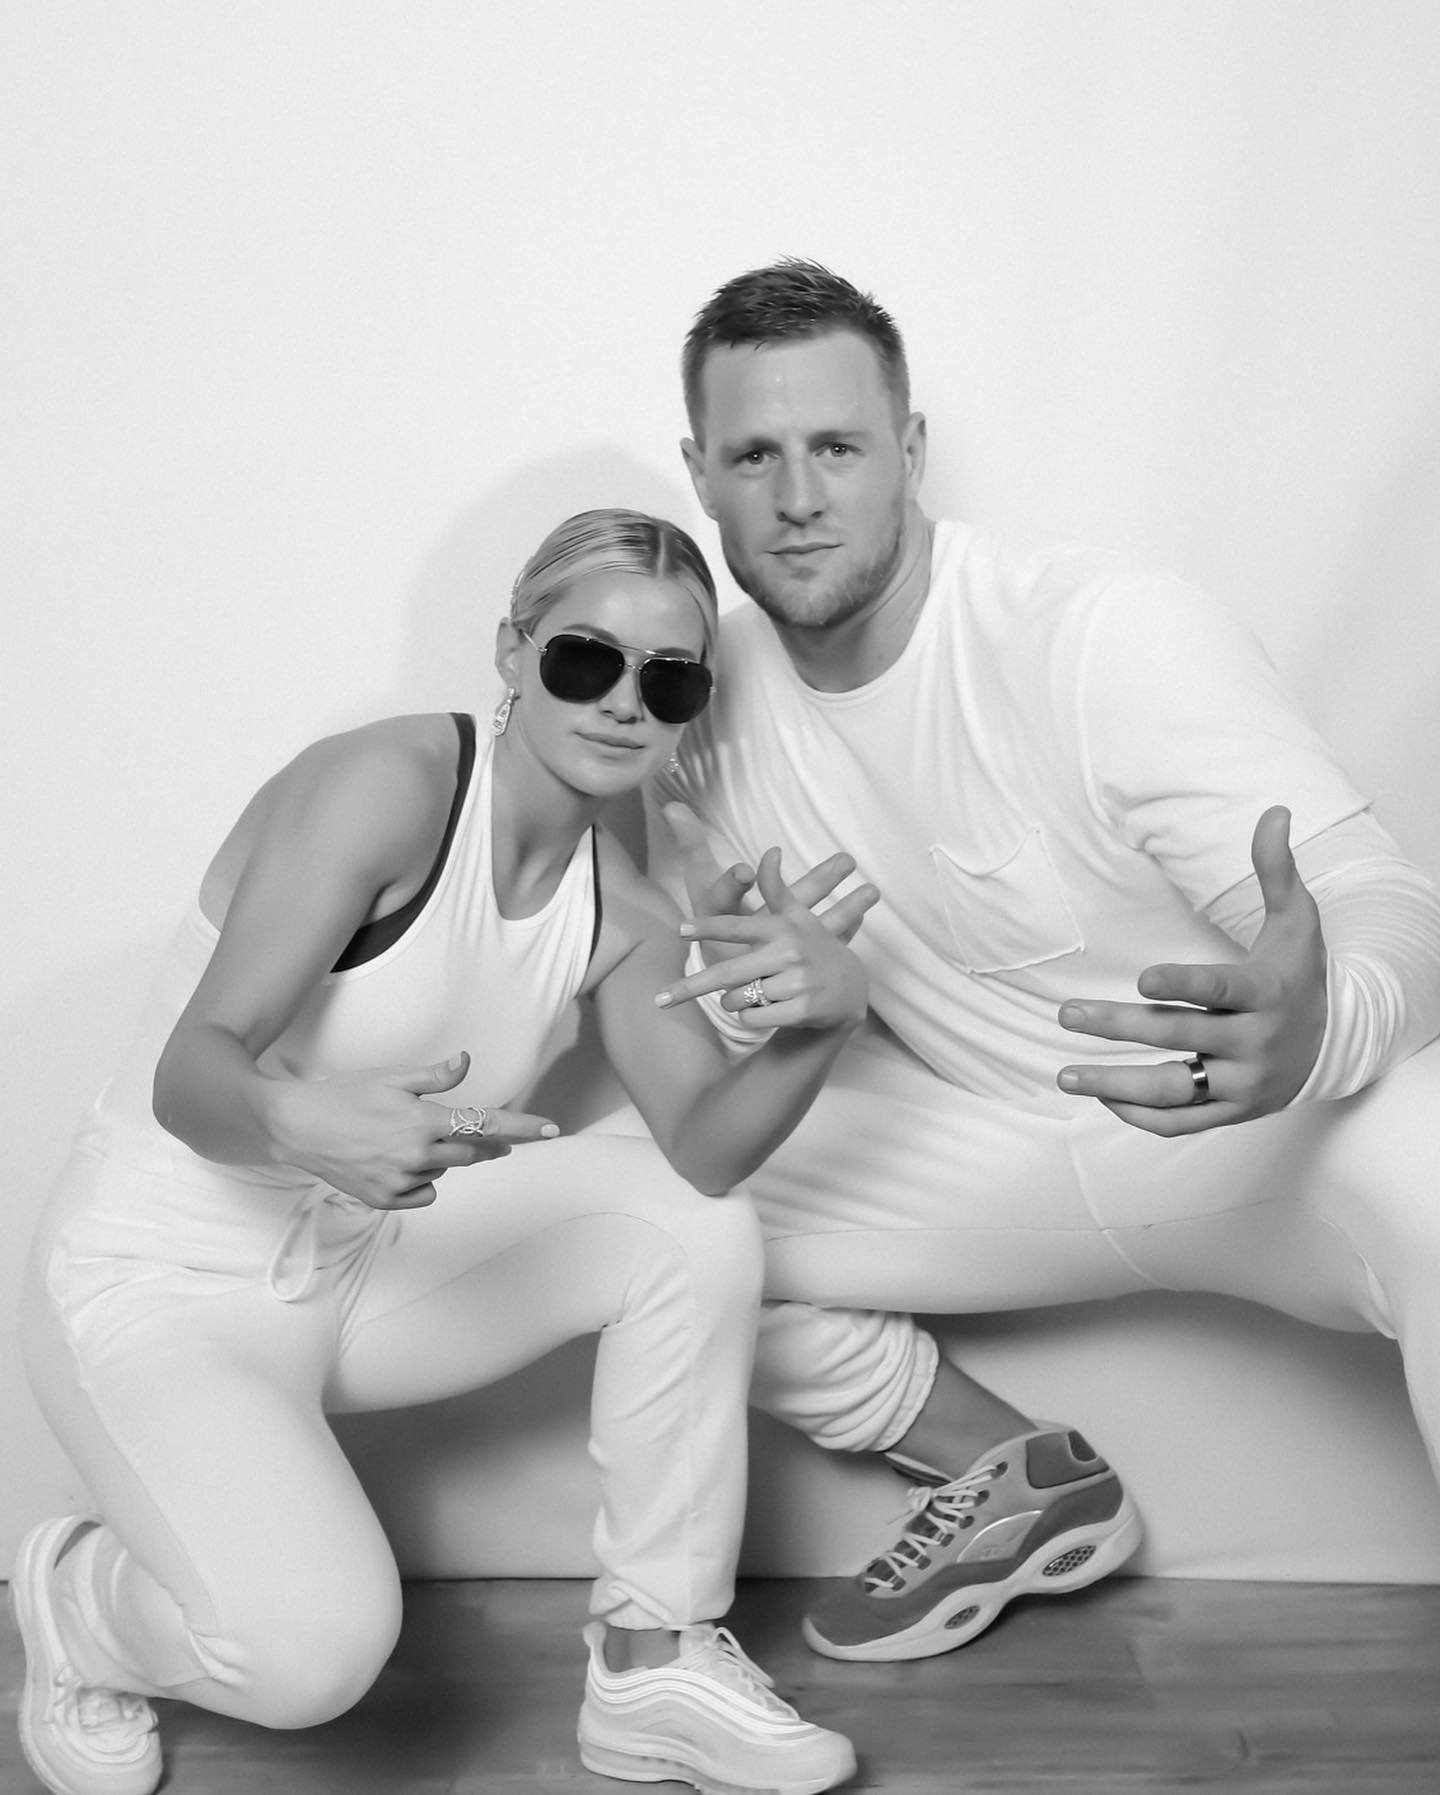 Jj Watt Wedding Pictures: JJ Watt And Kealia Ohai Marry In Valentine's Weekend Wedding